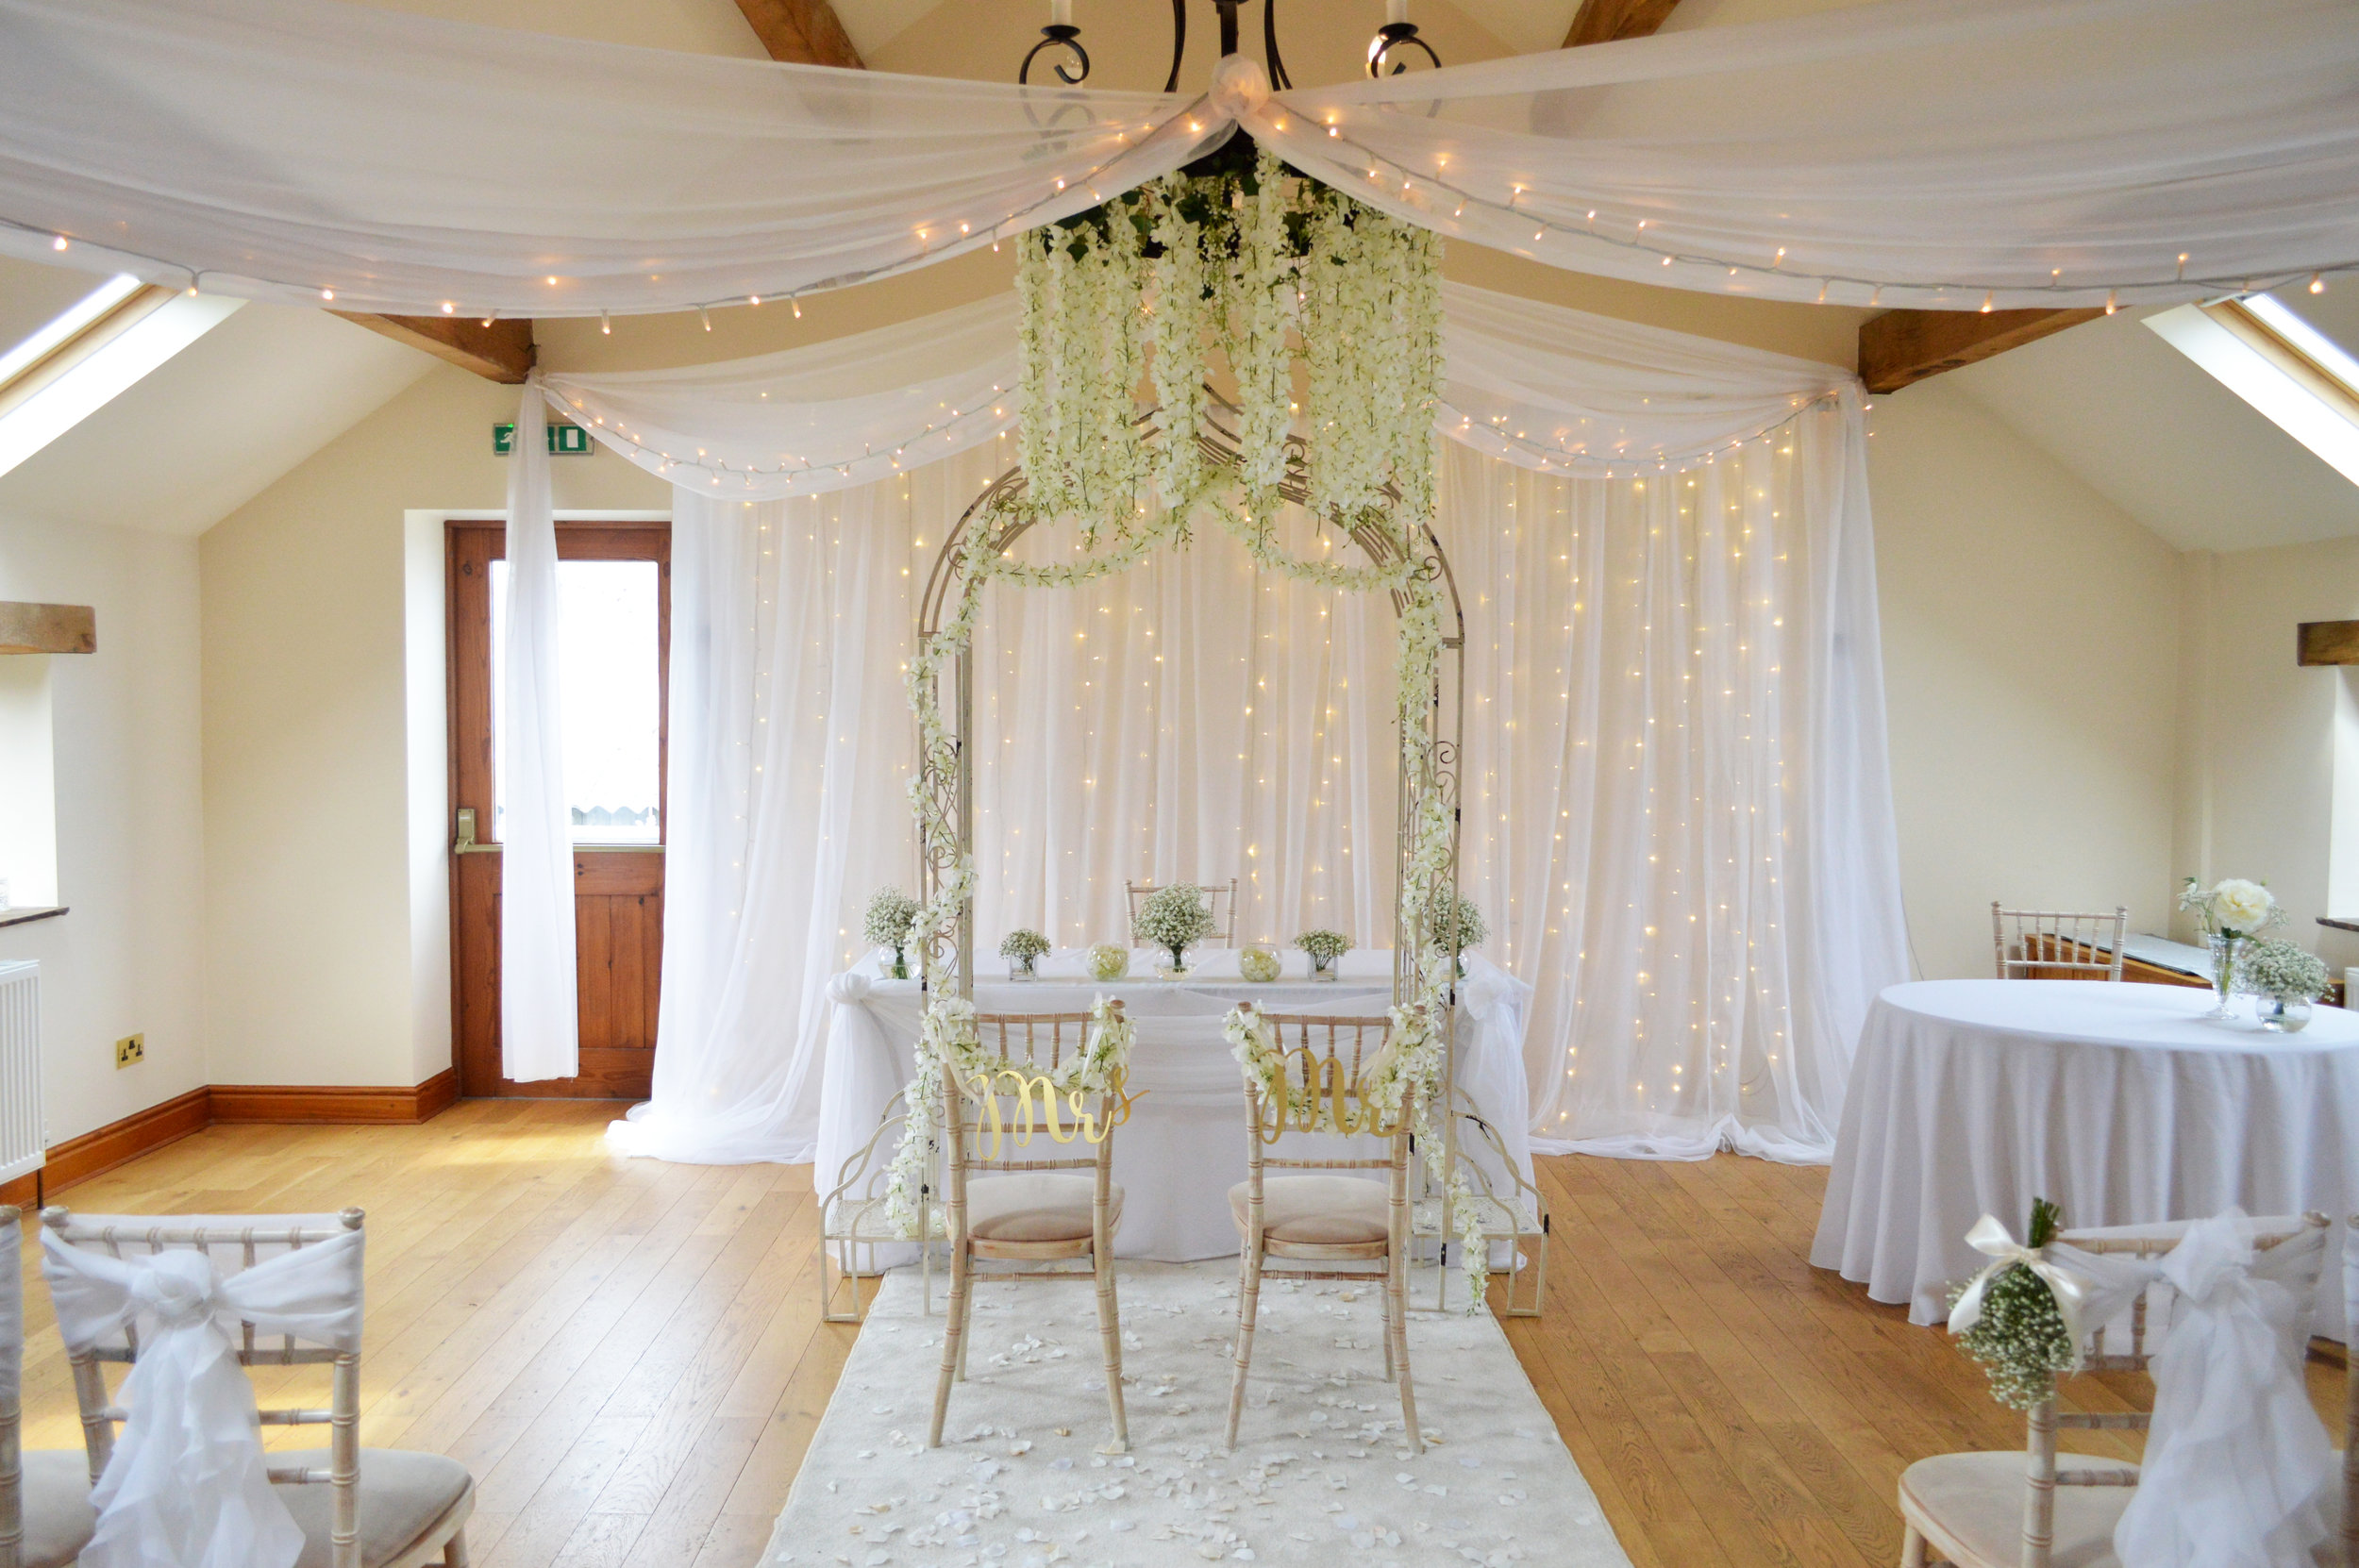 Blossom hanging from chandelier with arch way and fairy light backdrop